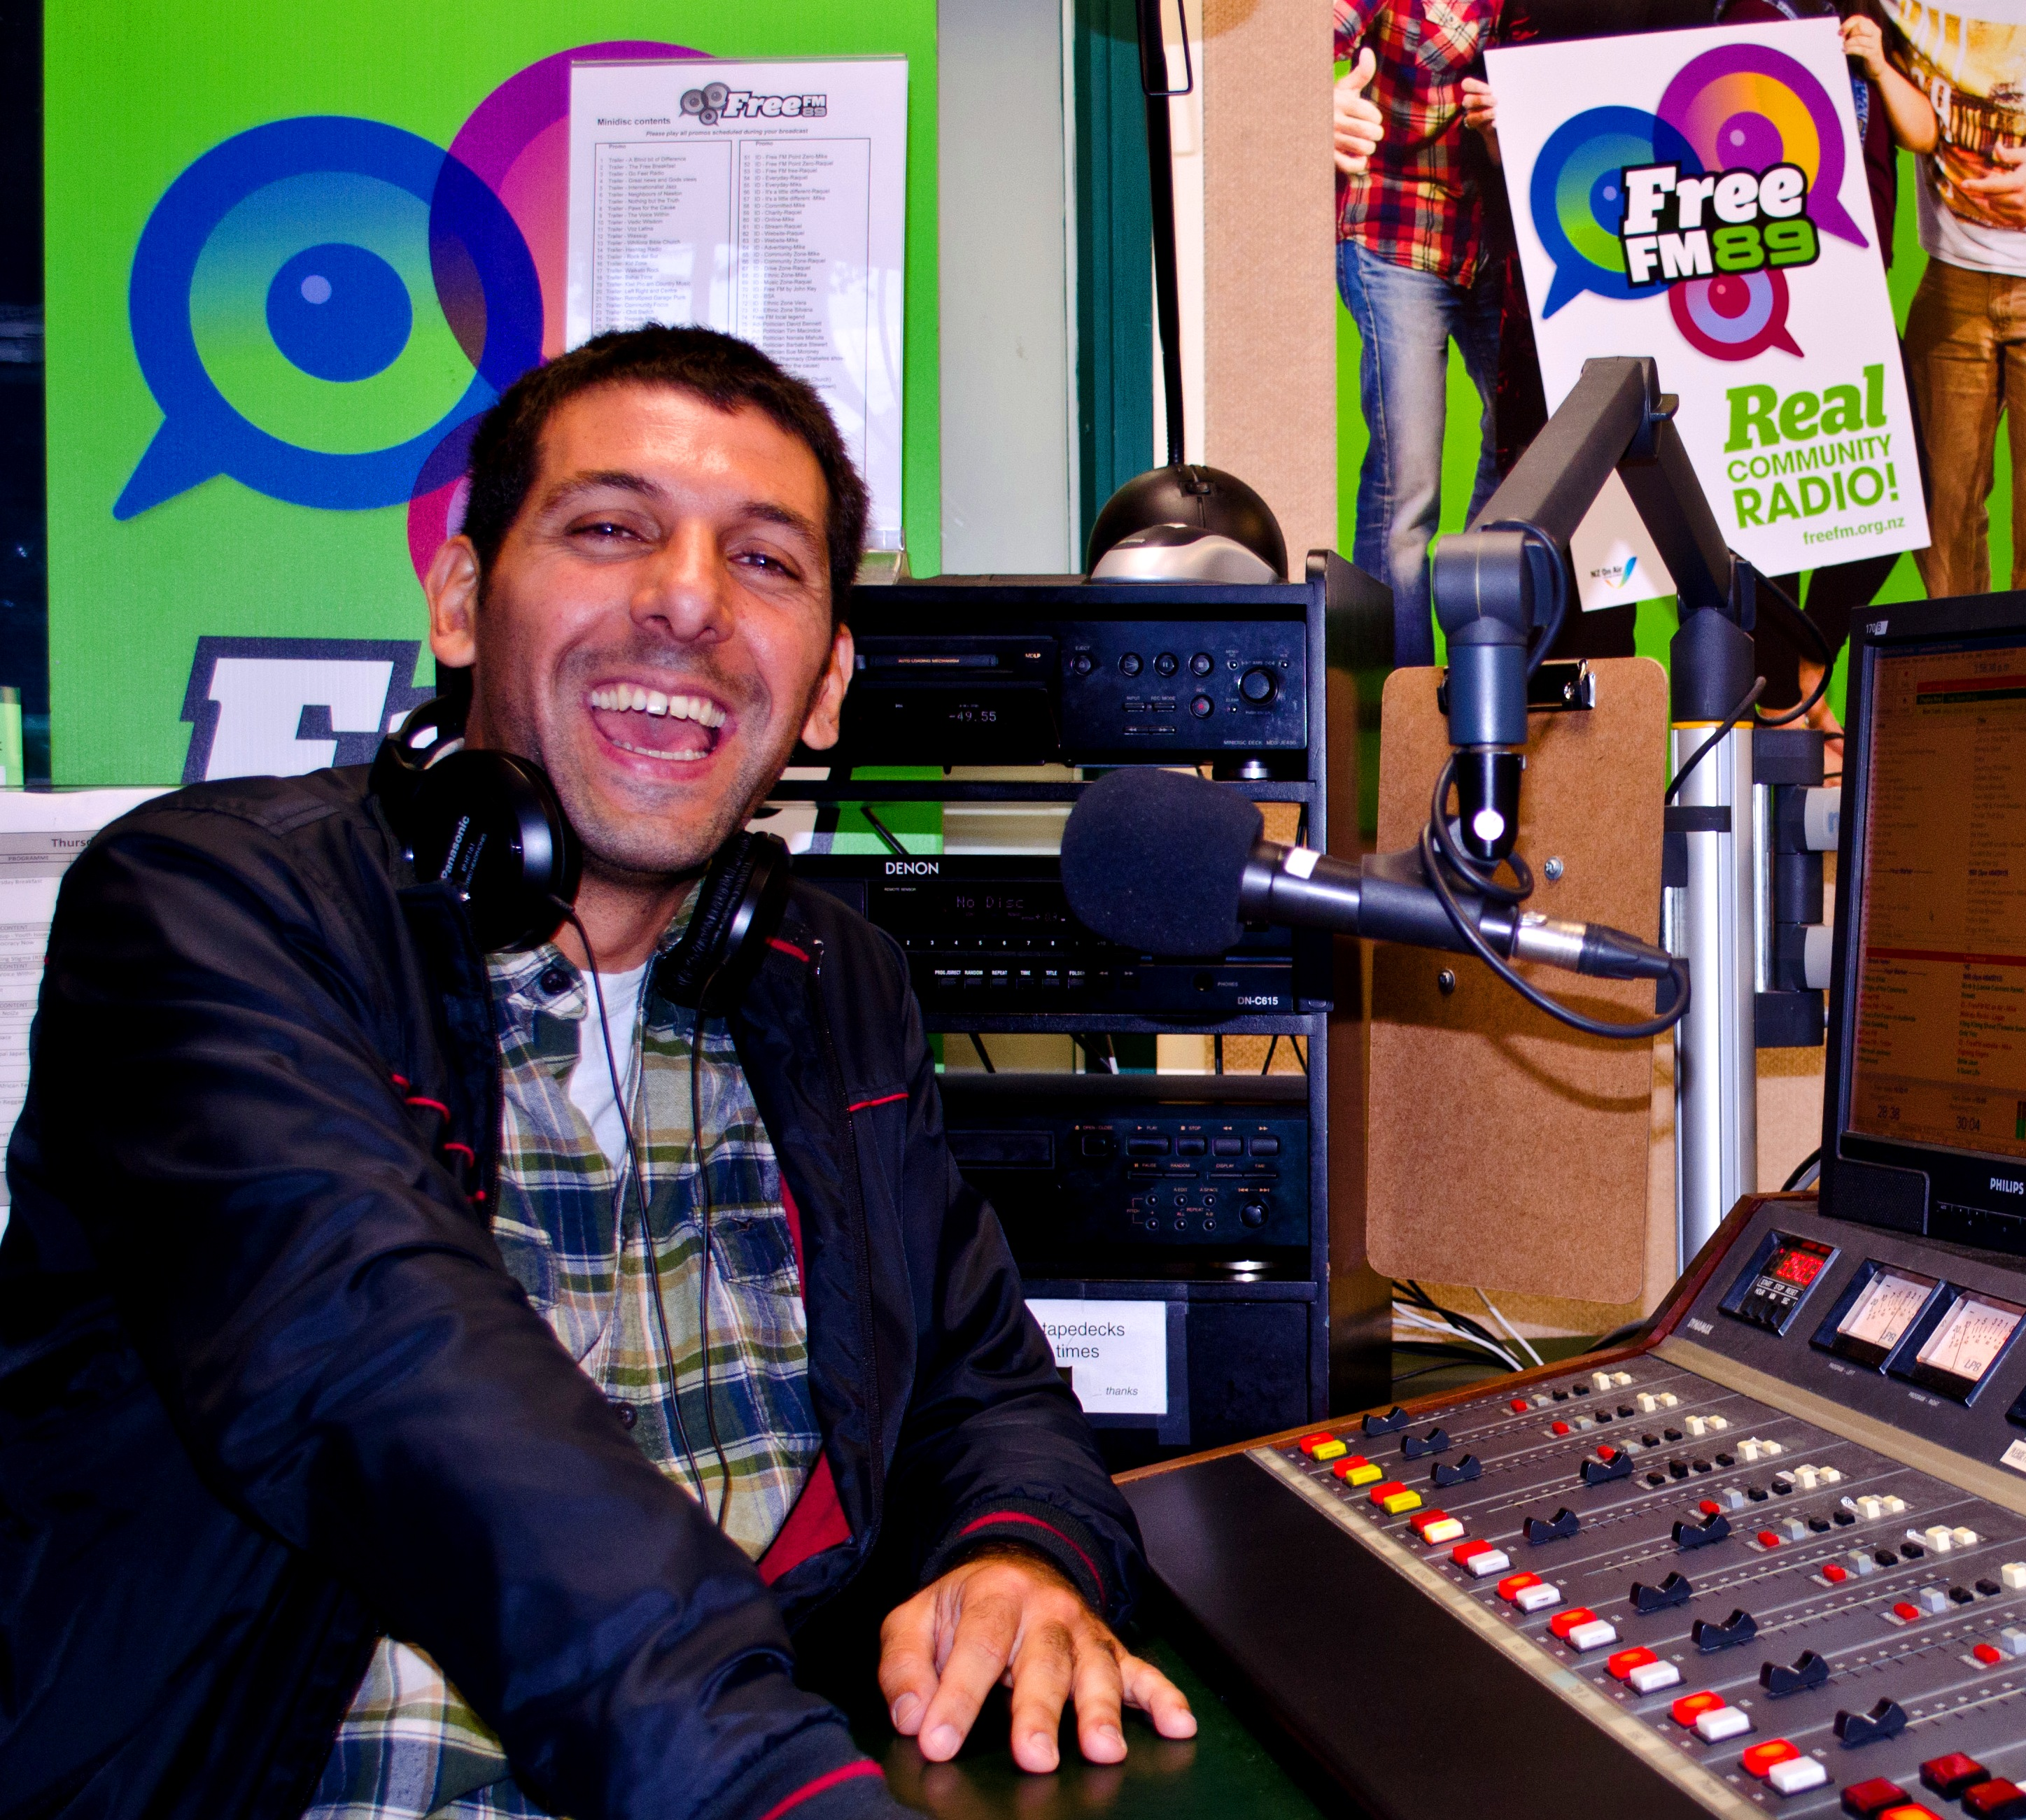 ON AIR: Juan Martinez prepares for his long show in the Free FM studio.